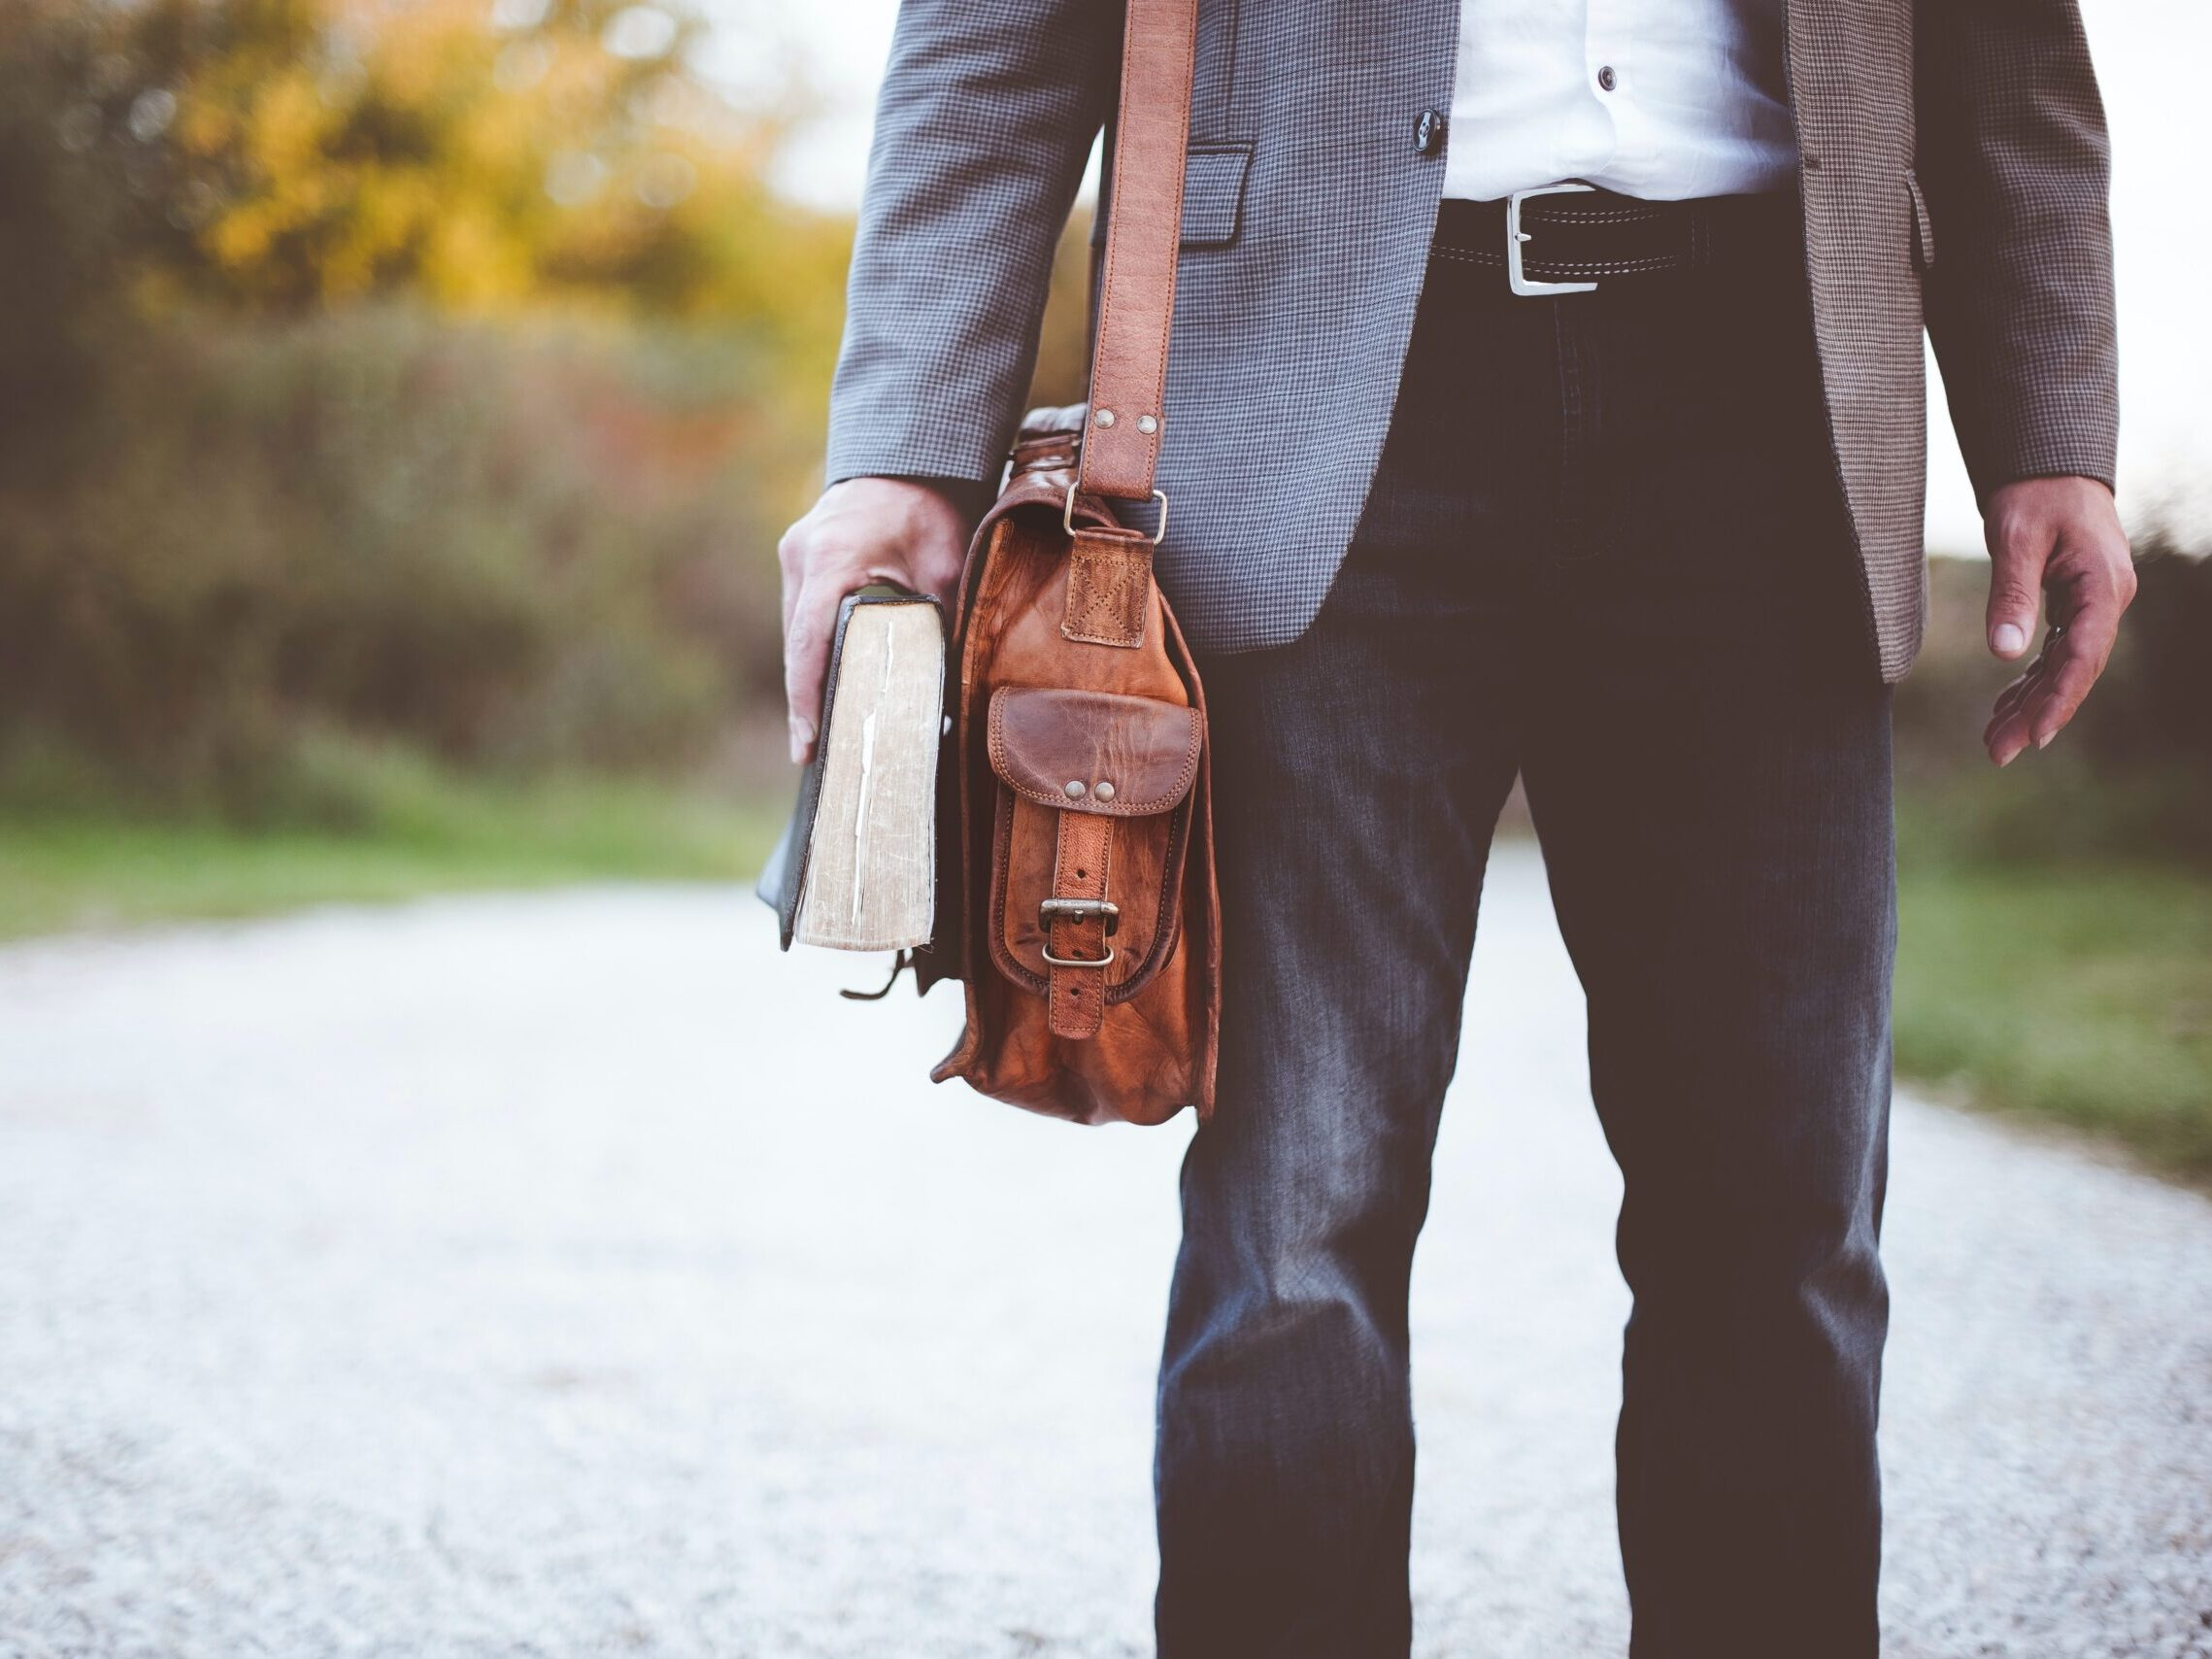 man holding book on road during daytime